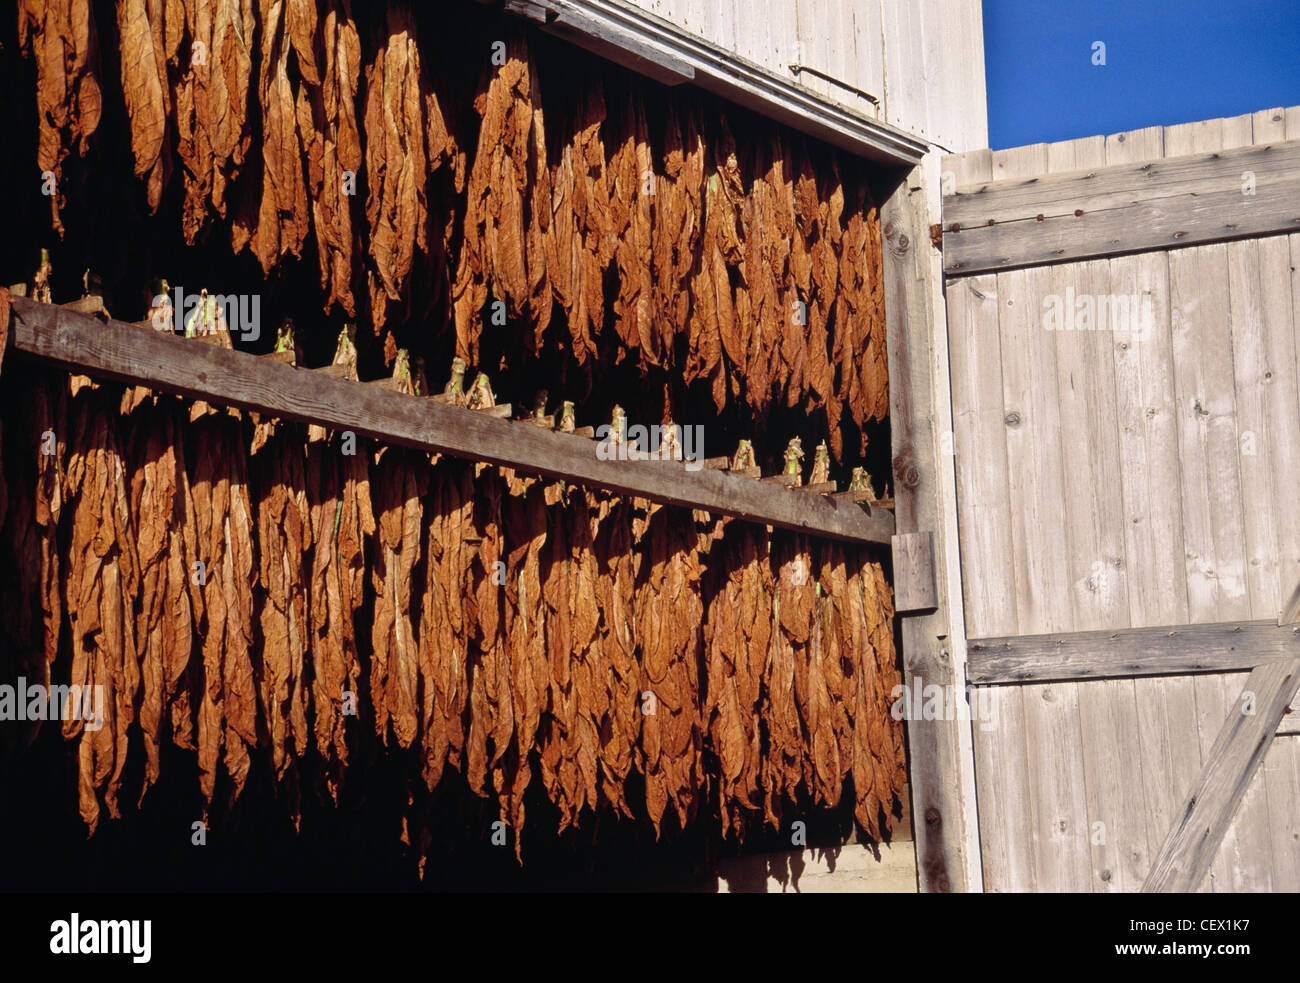 Drying leaves in barn on tobacco farm in Lancaster County, PA, USA - Stock Image